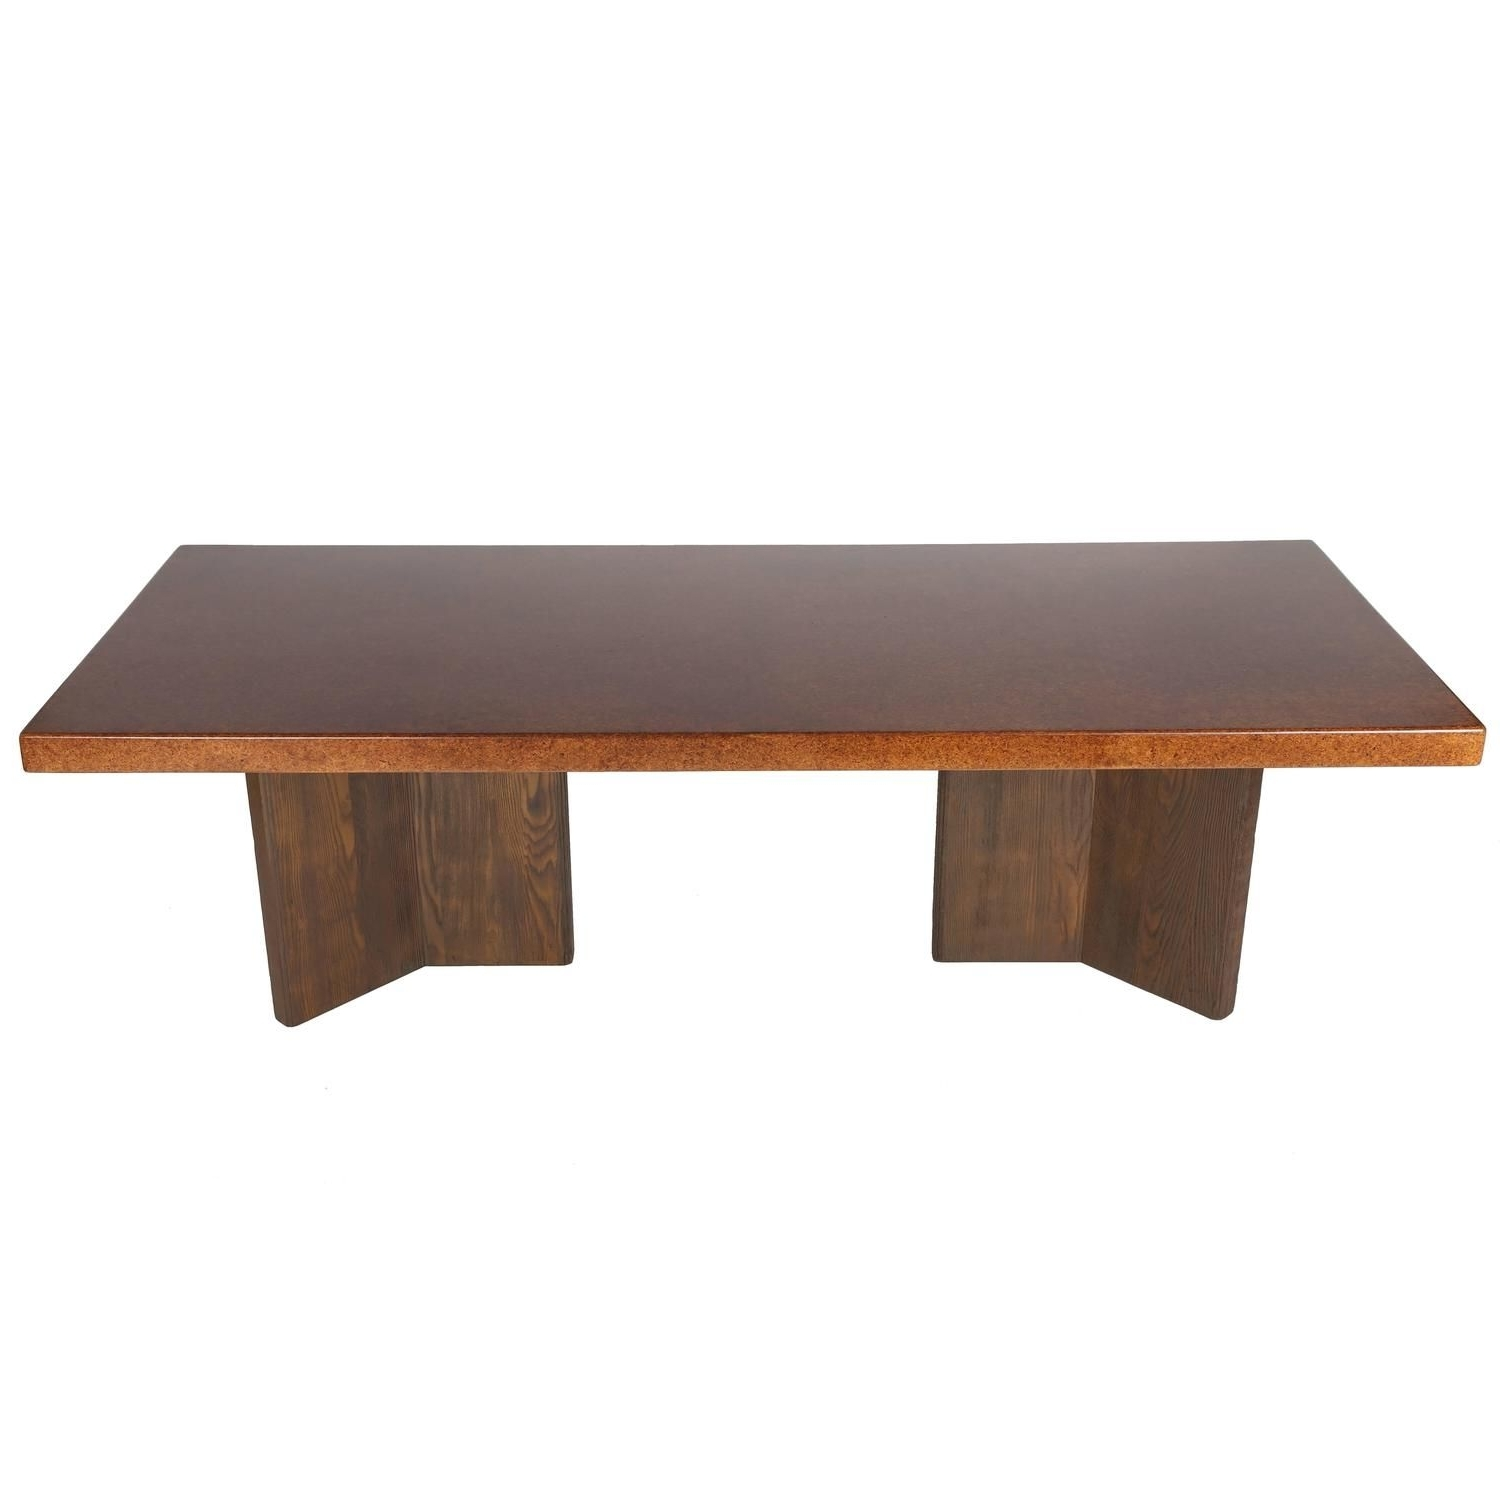 Preferred Cork Dining Tables With Large Cork Top Dining Tablepaul Frankl For Johnson Furniture (Gallery 19 of 25)